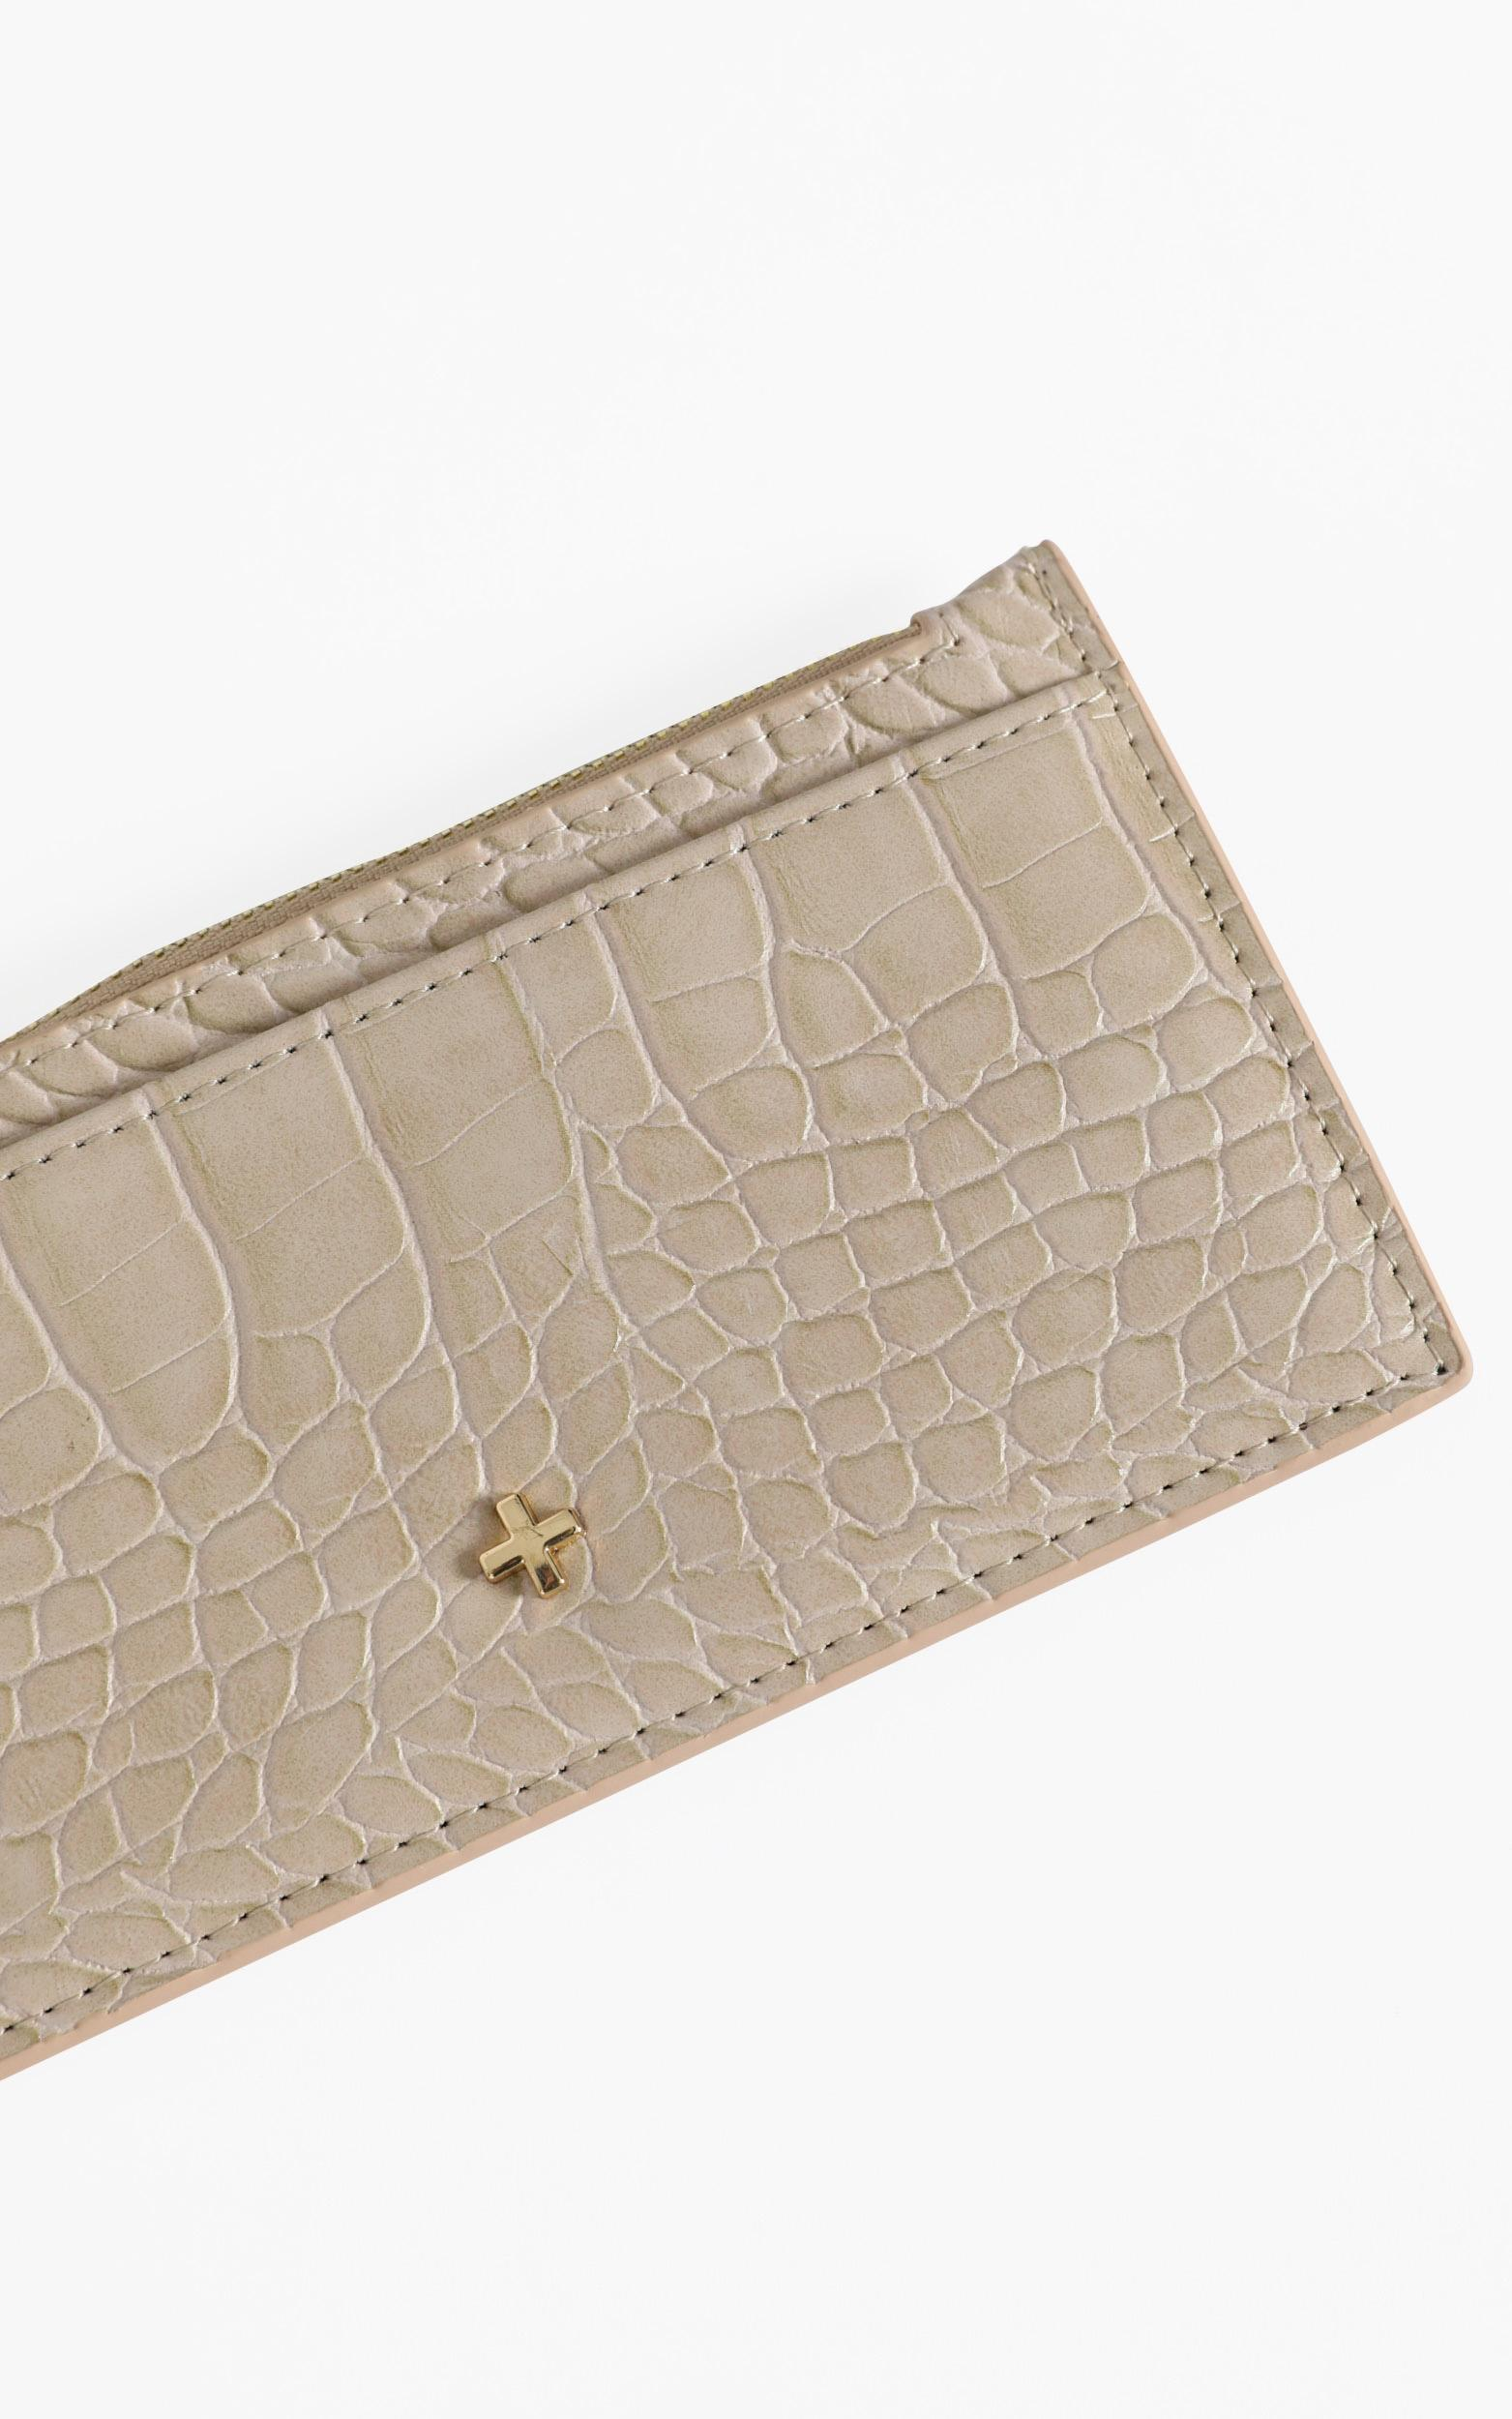 Peta and Jain - Marley Card Holder in Nude Croc, , hi-res image number null